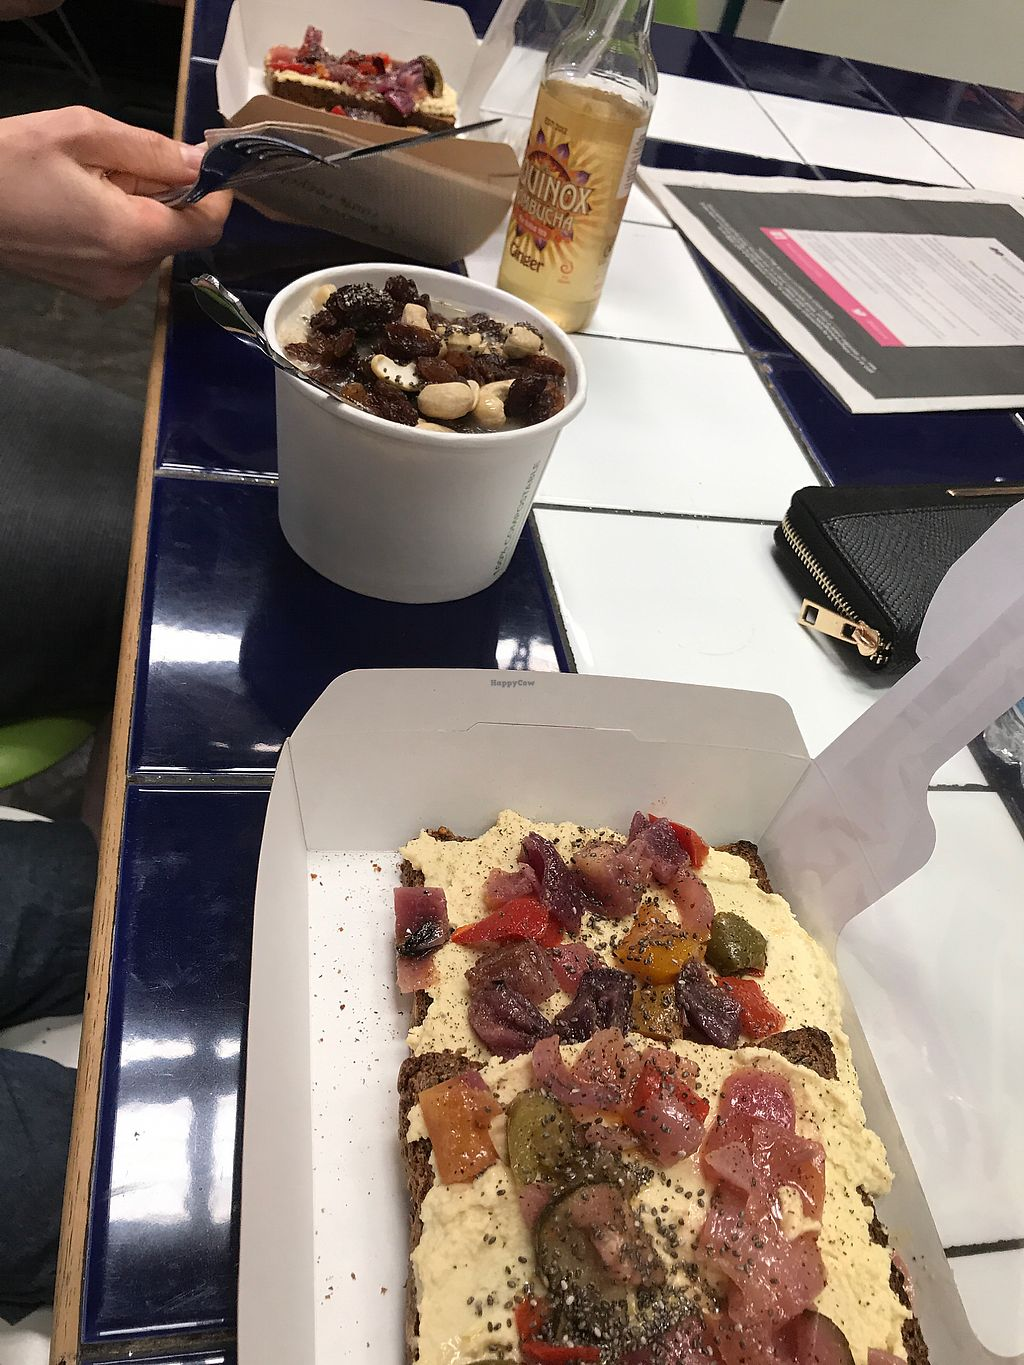 """Photo of The Feel Good Cafe  by <a href=""""/members/profile/gemmafee"""">gemmafee</a> <br/>porridge, and roasted vegetable and hummus on toast  <br/> July 27, 2017  - <a href='/contact/abuse/image/63478/285687'>Report</a>"""